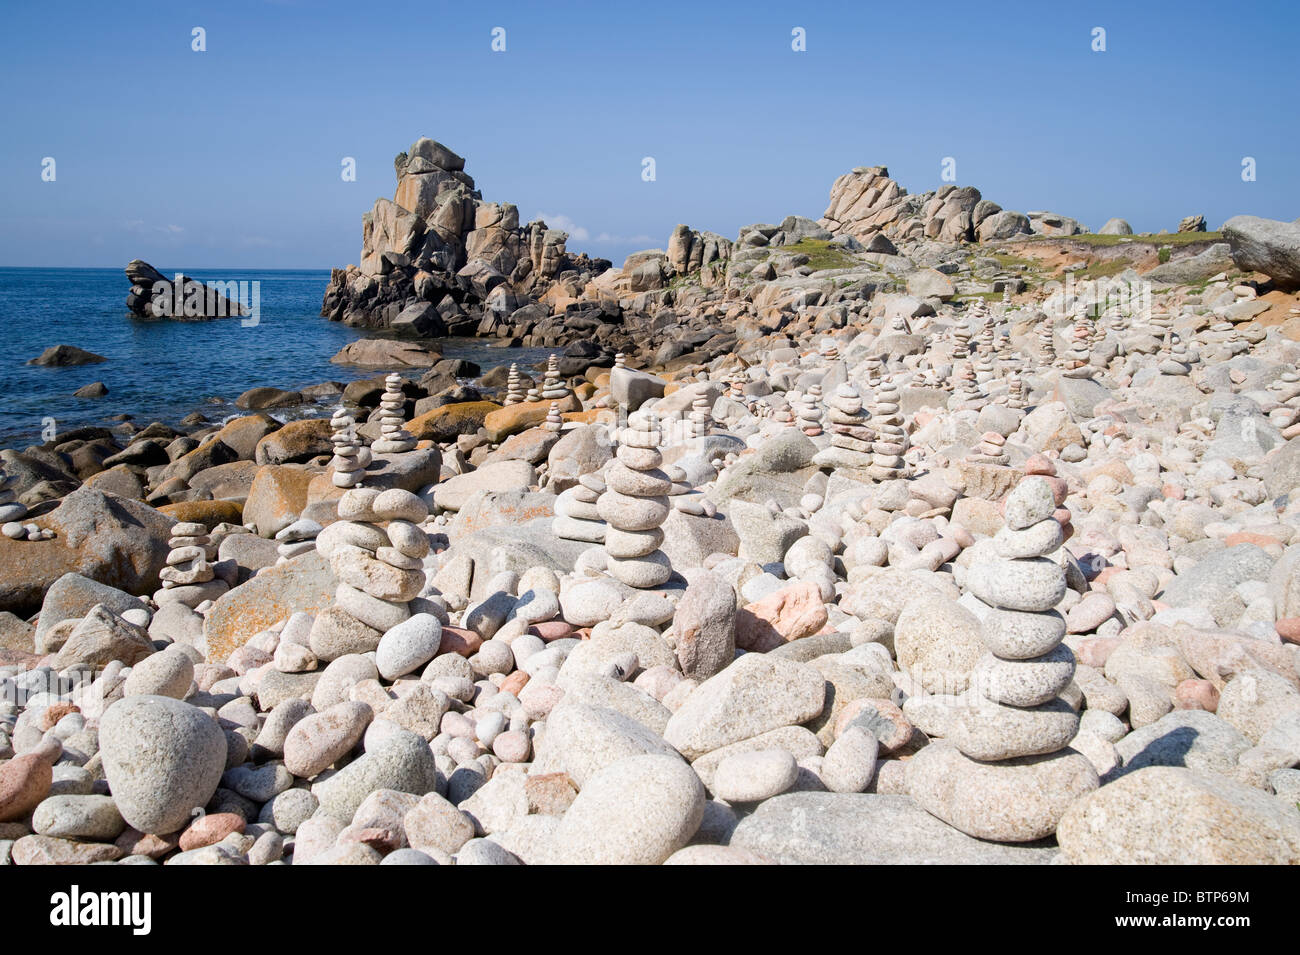 Pebble Beach in St. Agnes Beach, Isles of Scilly, UK. - Stock Image